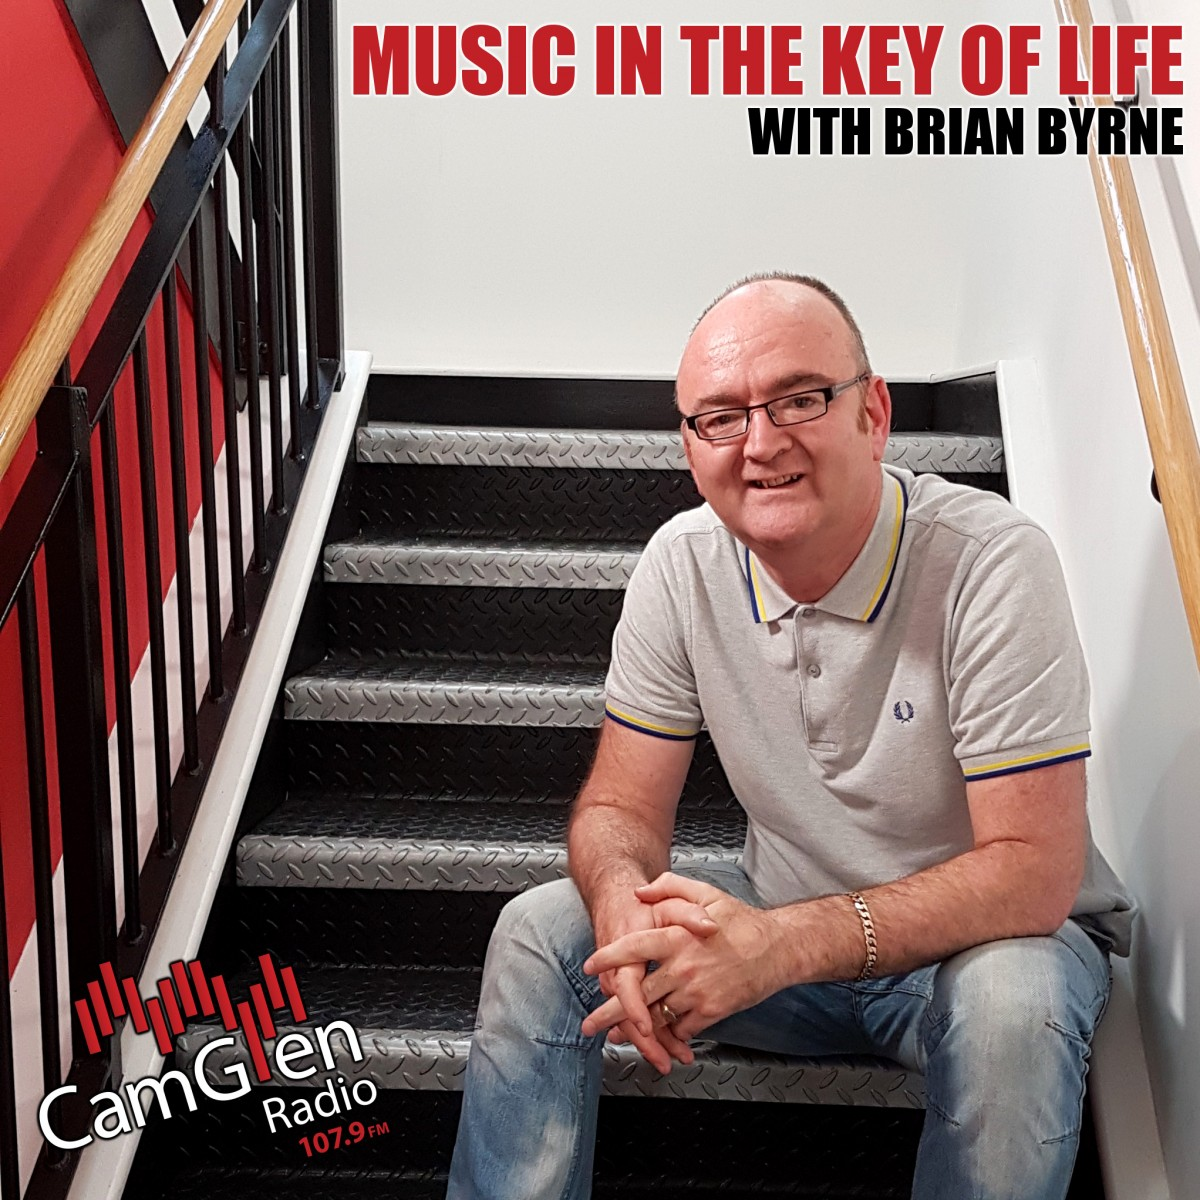 Brian Byrne on the stairs outside the studio